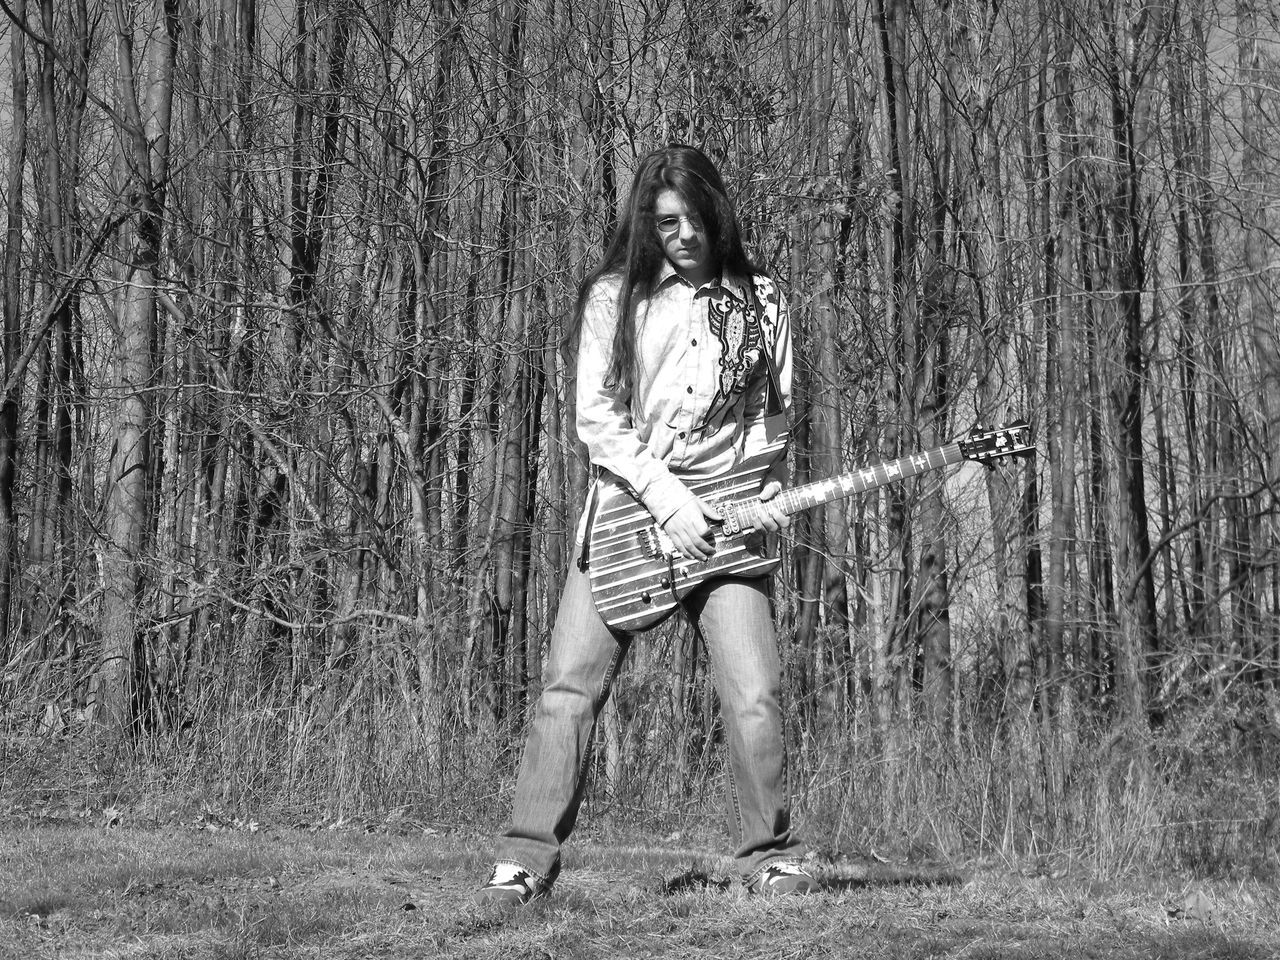 Black And White Photography Blackandwhite Blackandwhite Photography Full Frame Guitar Guitars One Person Rock N Roll Woods Young Adult Young Men